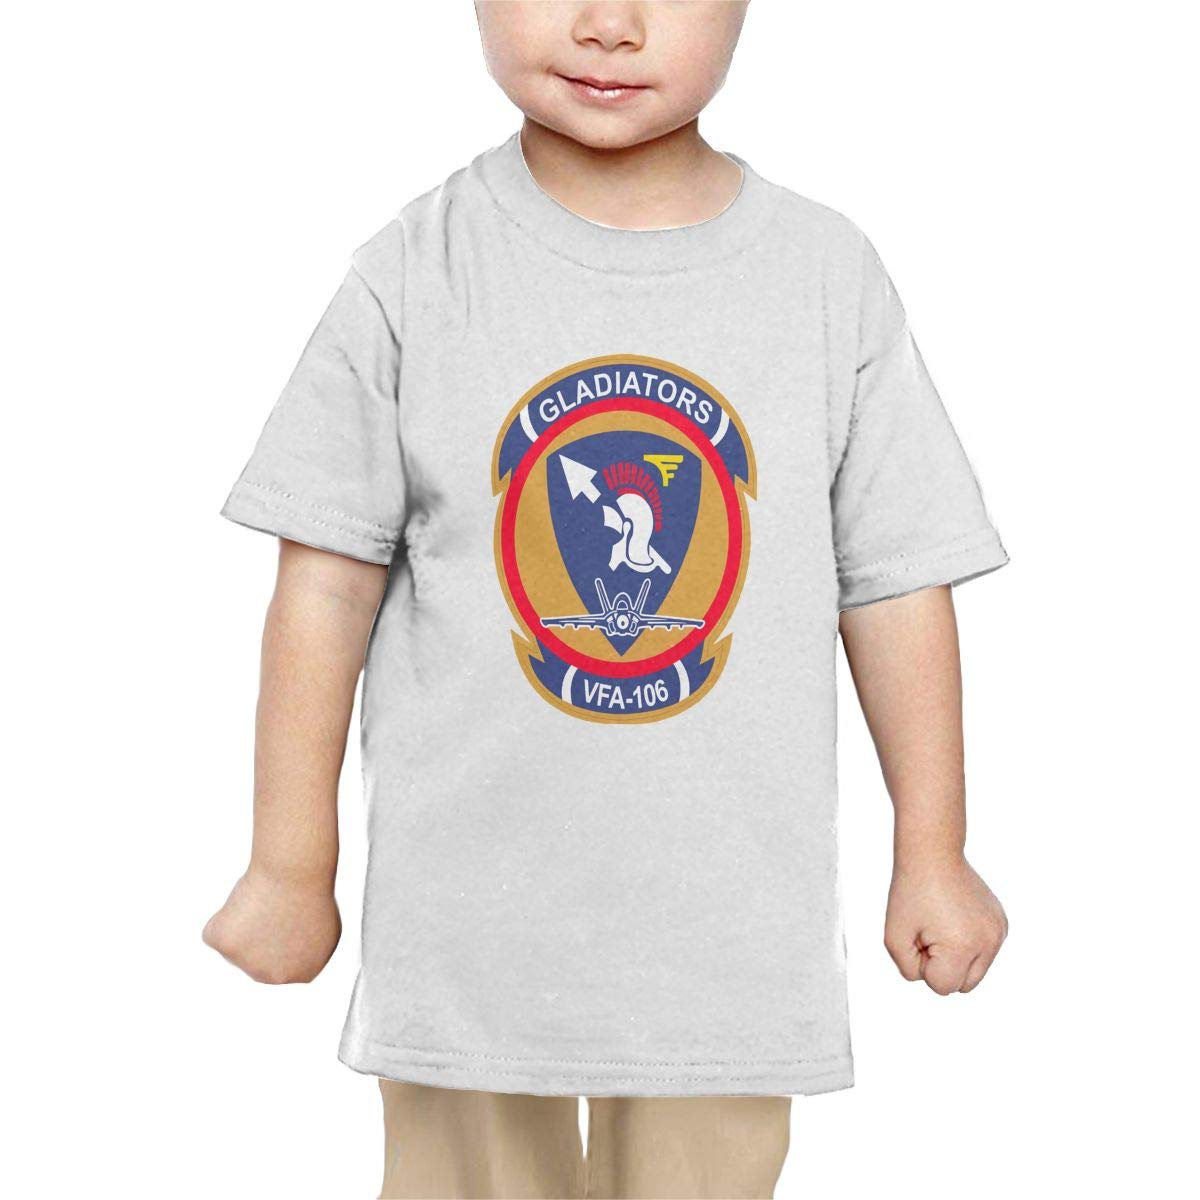 Chunmmmmm US Navy VFA-106 Gladiators Squadron Baby Kids Short Sleeve Crewneck Cotton T-Shirts